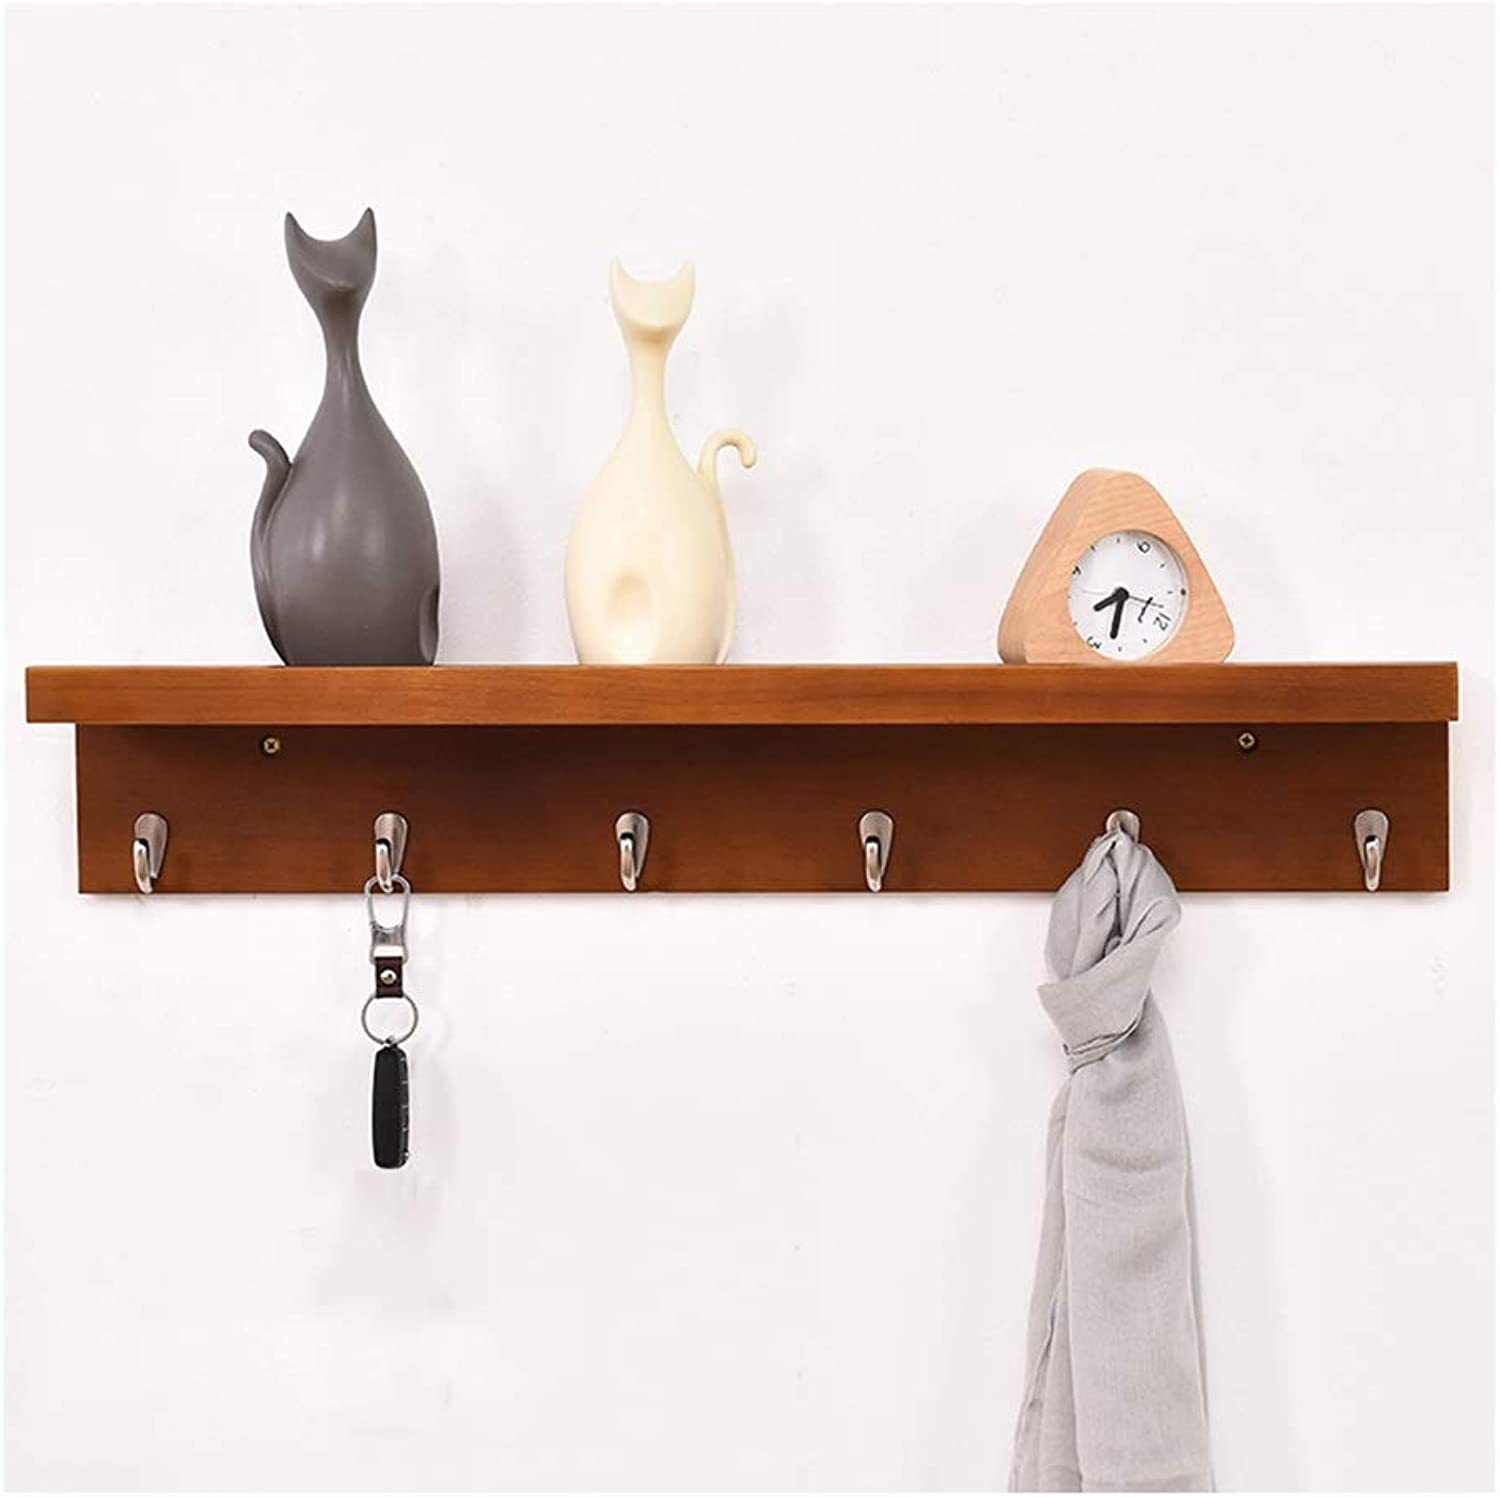 Coat Hanger Coat Rack Creative Solid Wood Coat Hooks With Storage Shelf Home Bedroom Living Room Porch Wall Mounted Clothes Hook (Size   6 hooks)